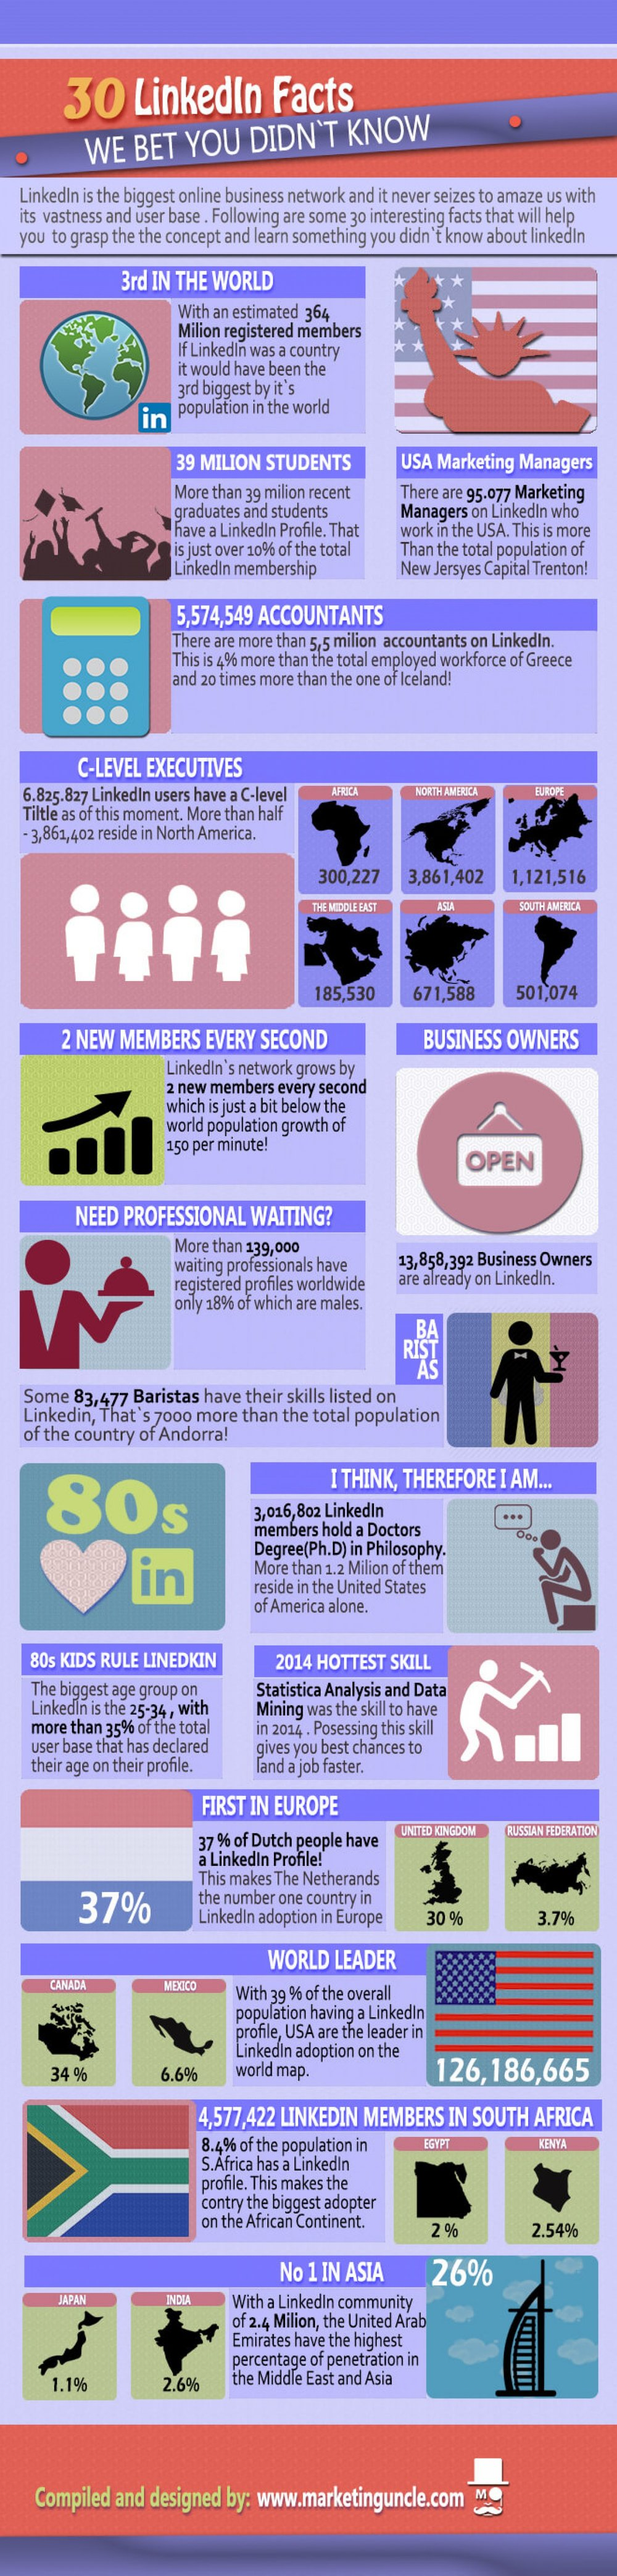 30-linkedin-facts-we-bet-you-didnt-know_56068f7d34190_w1500.jpg